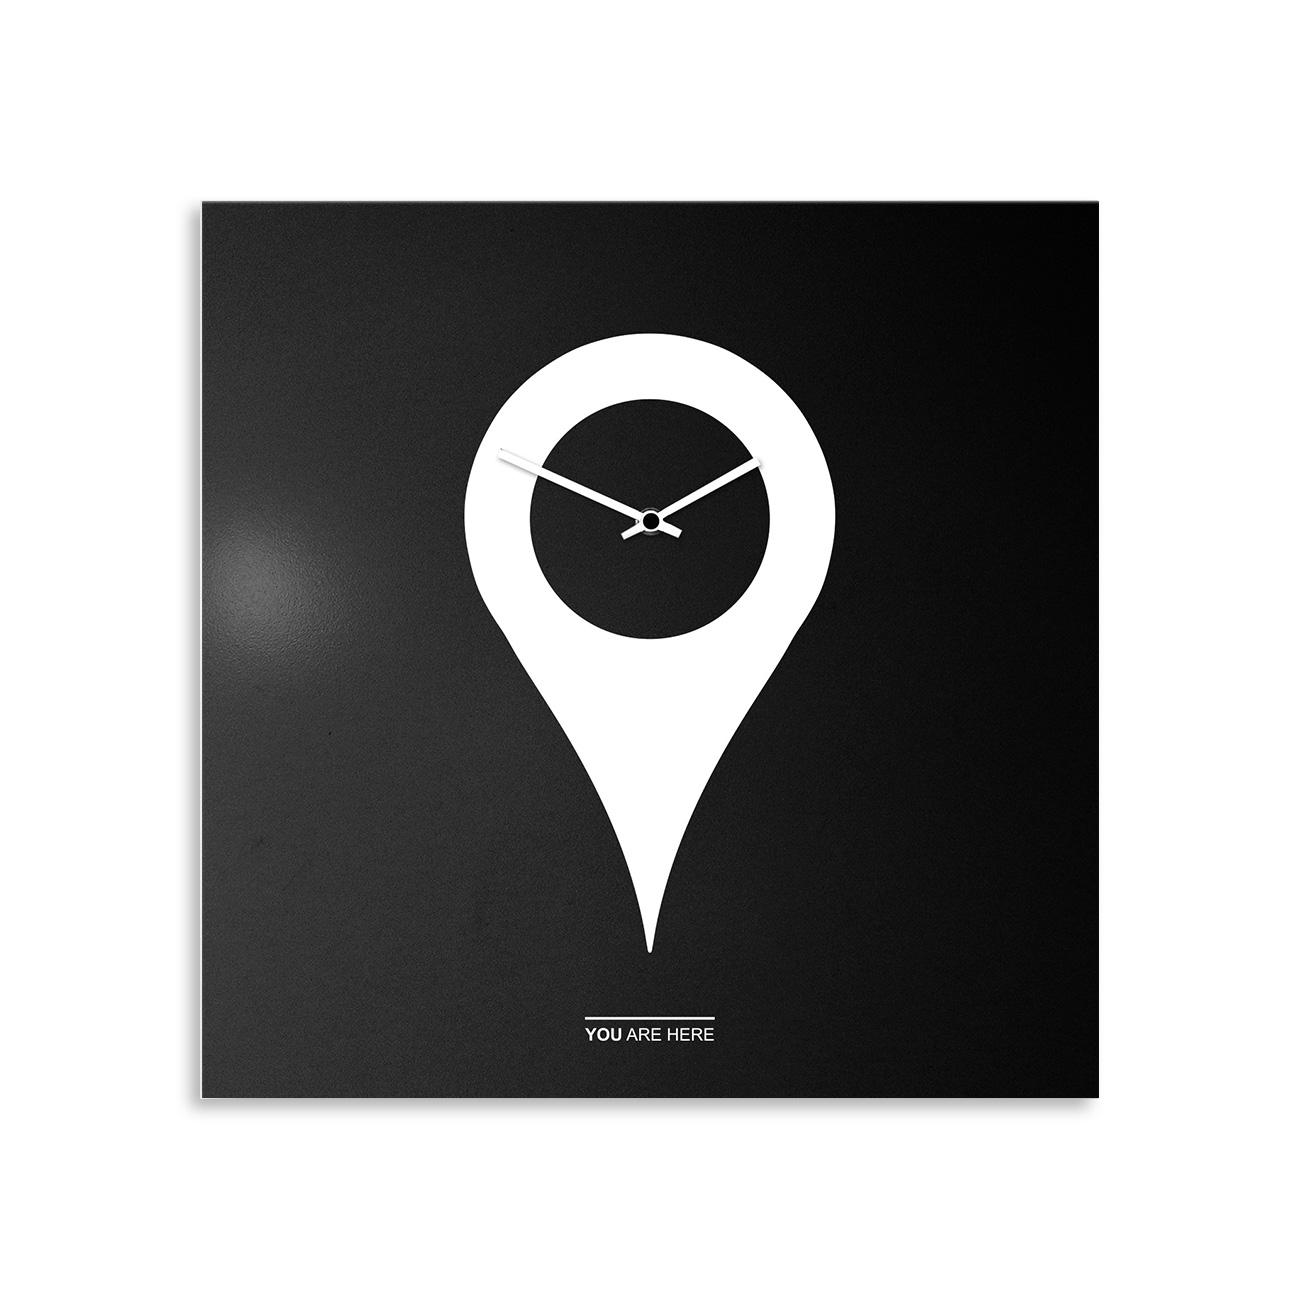 orologio-parete-design-wall-clock-you-are-here-black-white